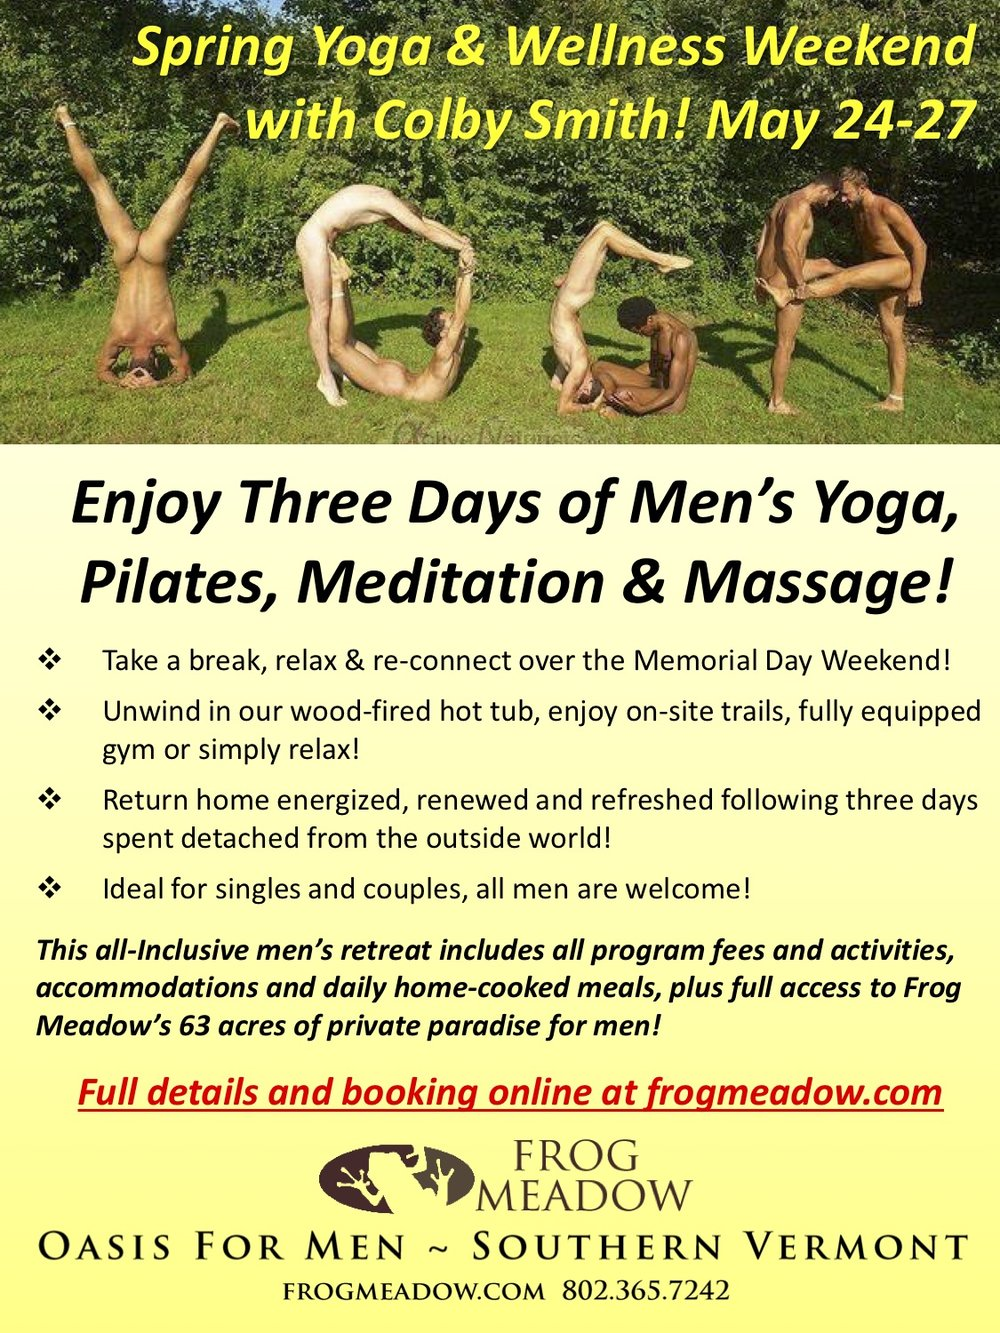 Winter Yoga Wellness Colby Smith May 2019 Poster.jpg